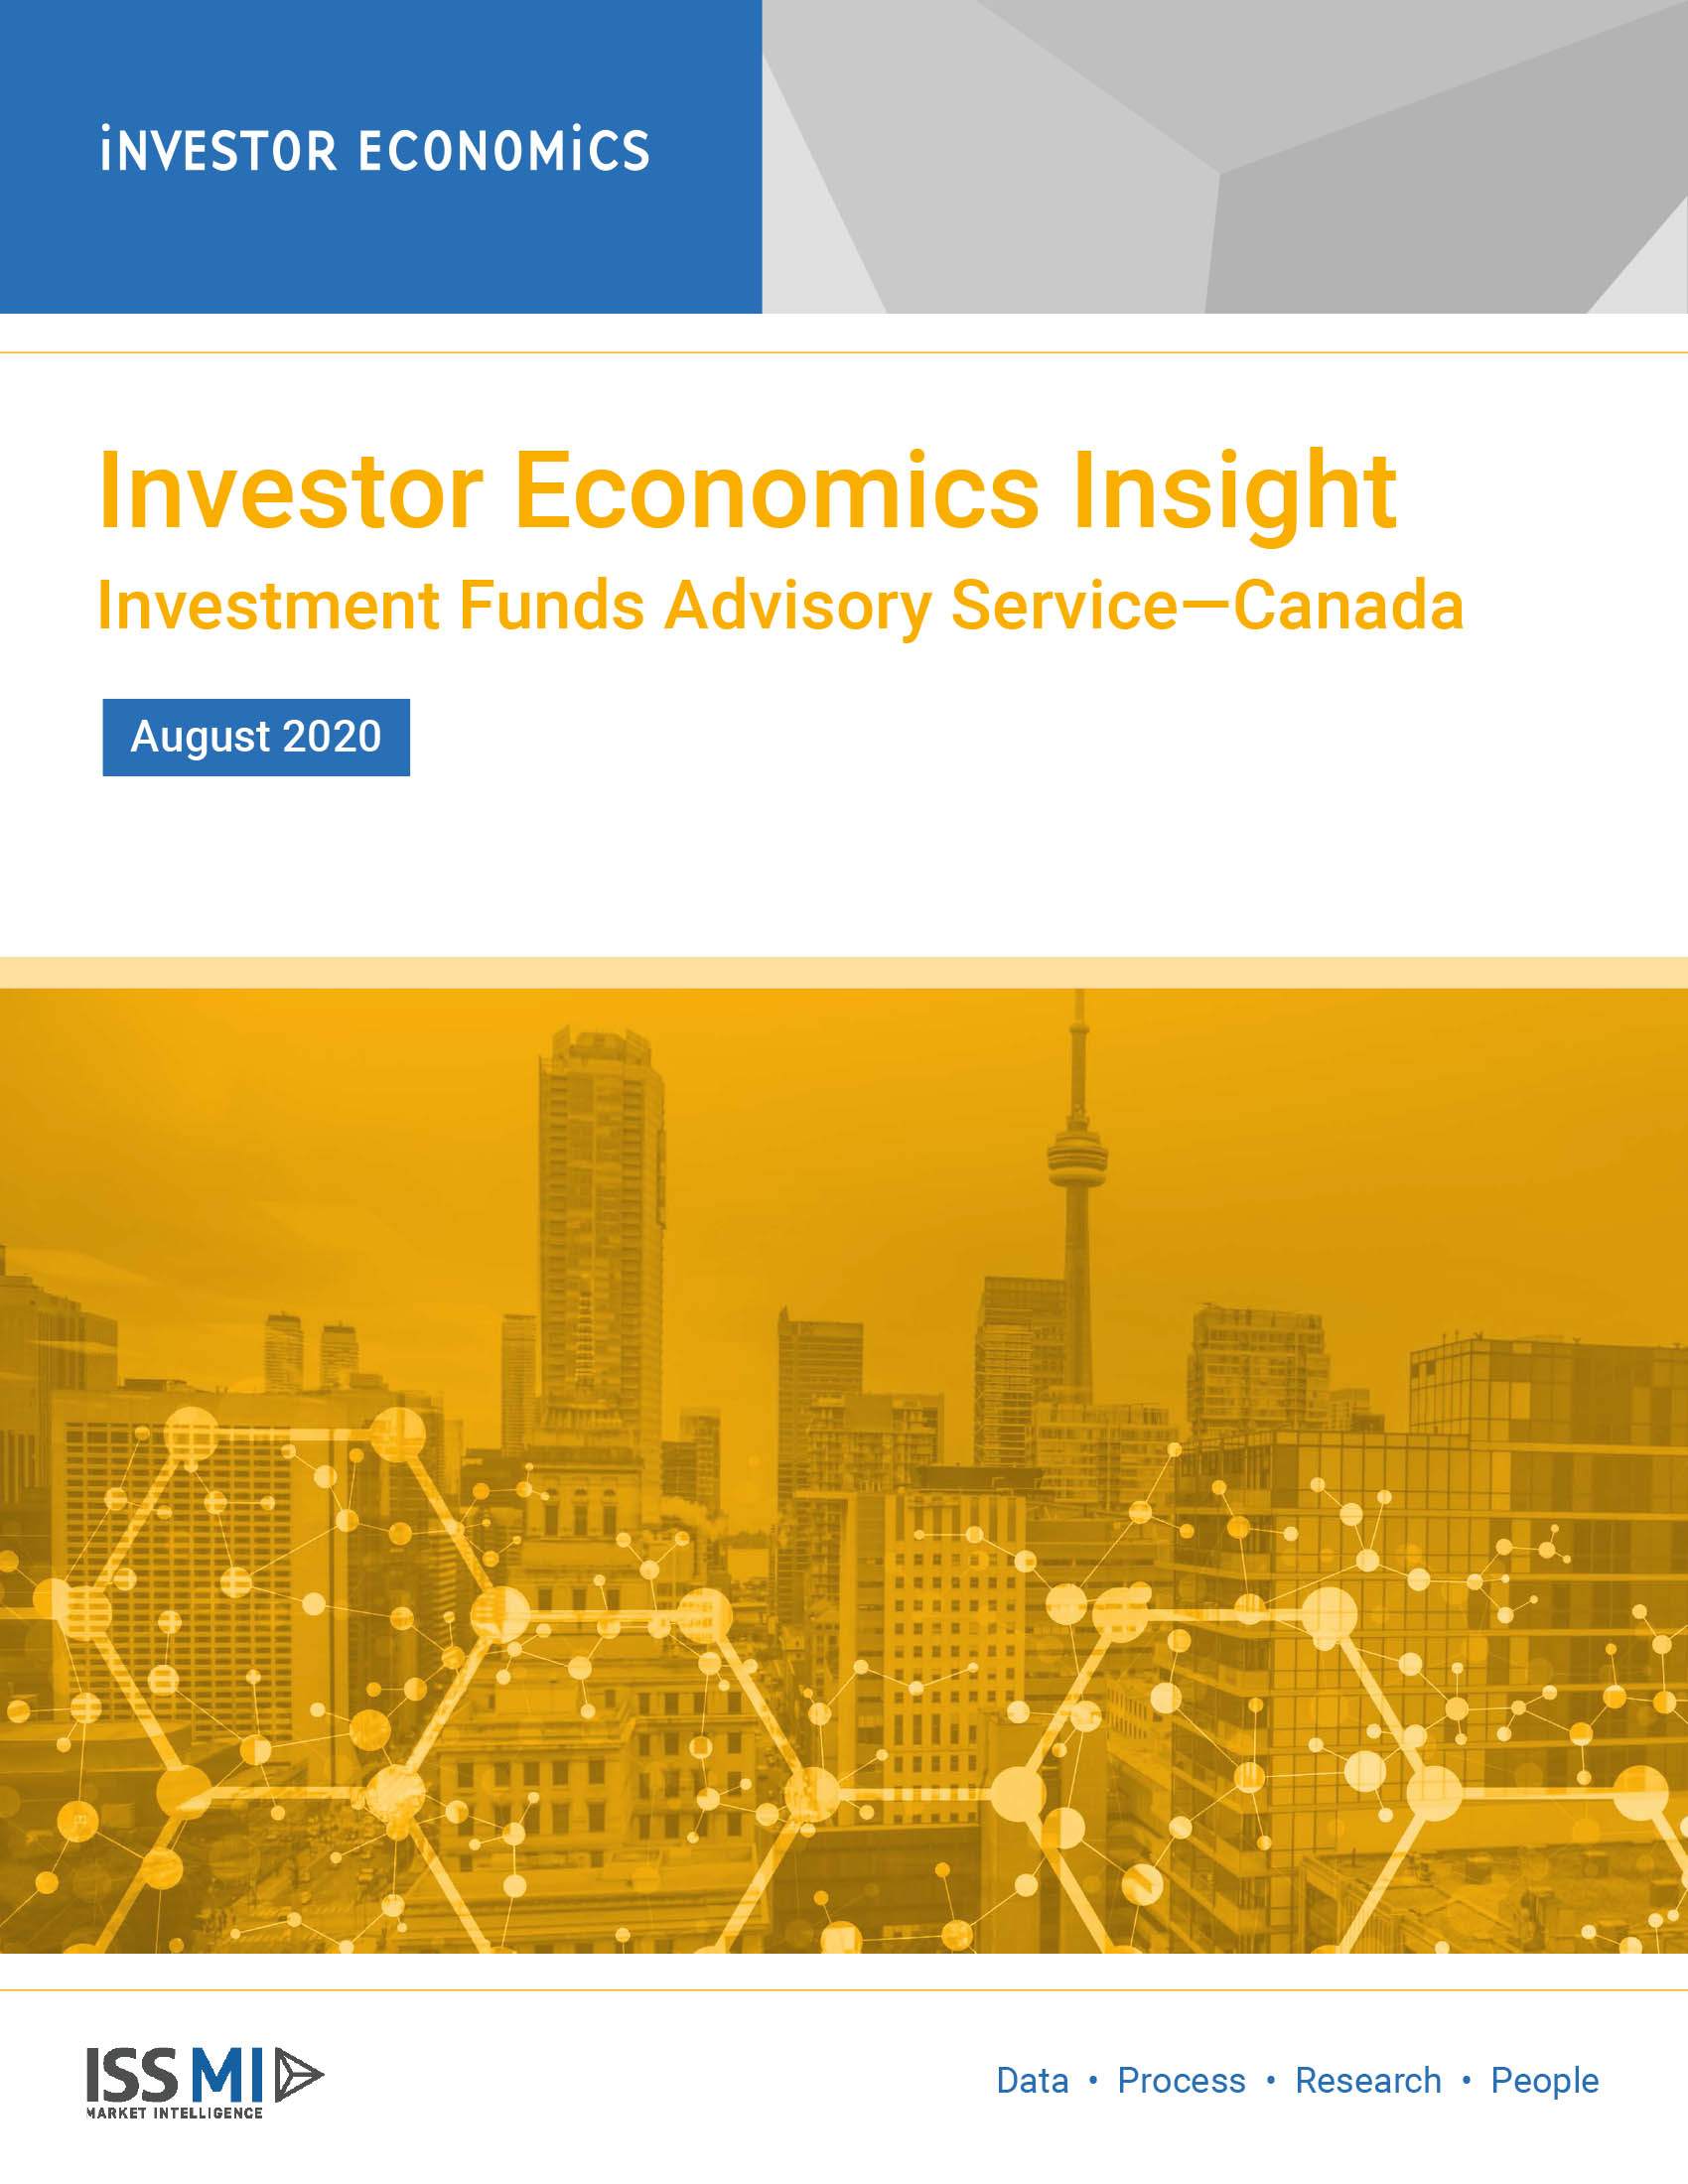 Investor Economics Insight August 2020